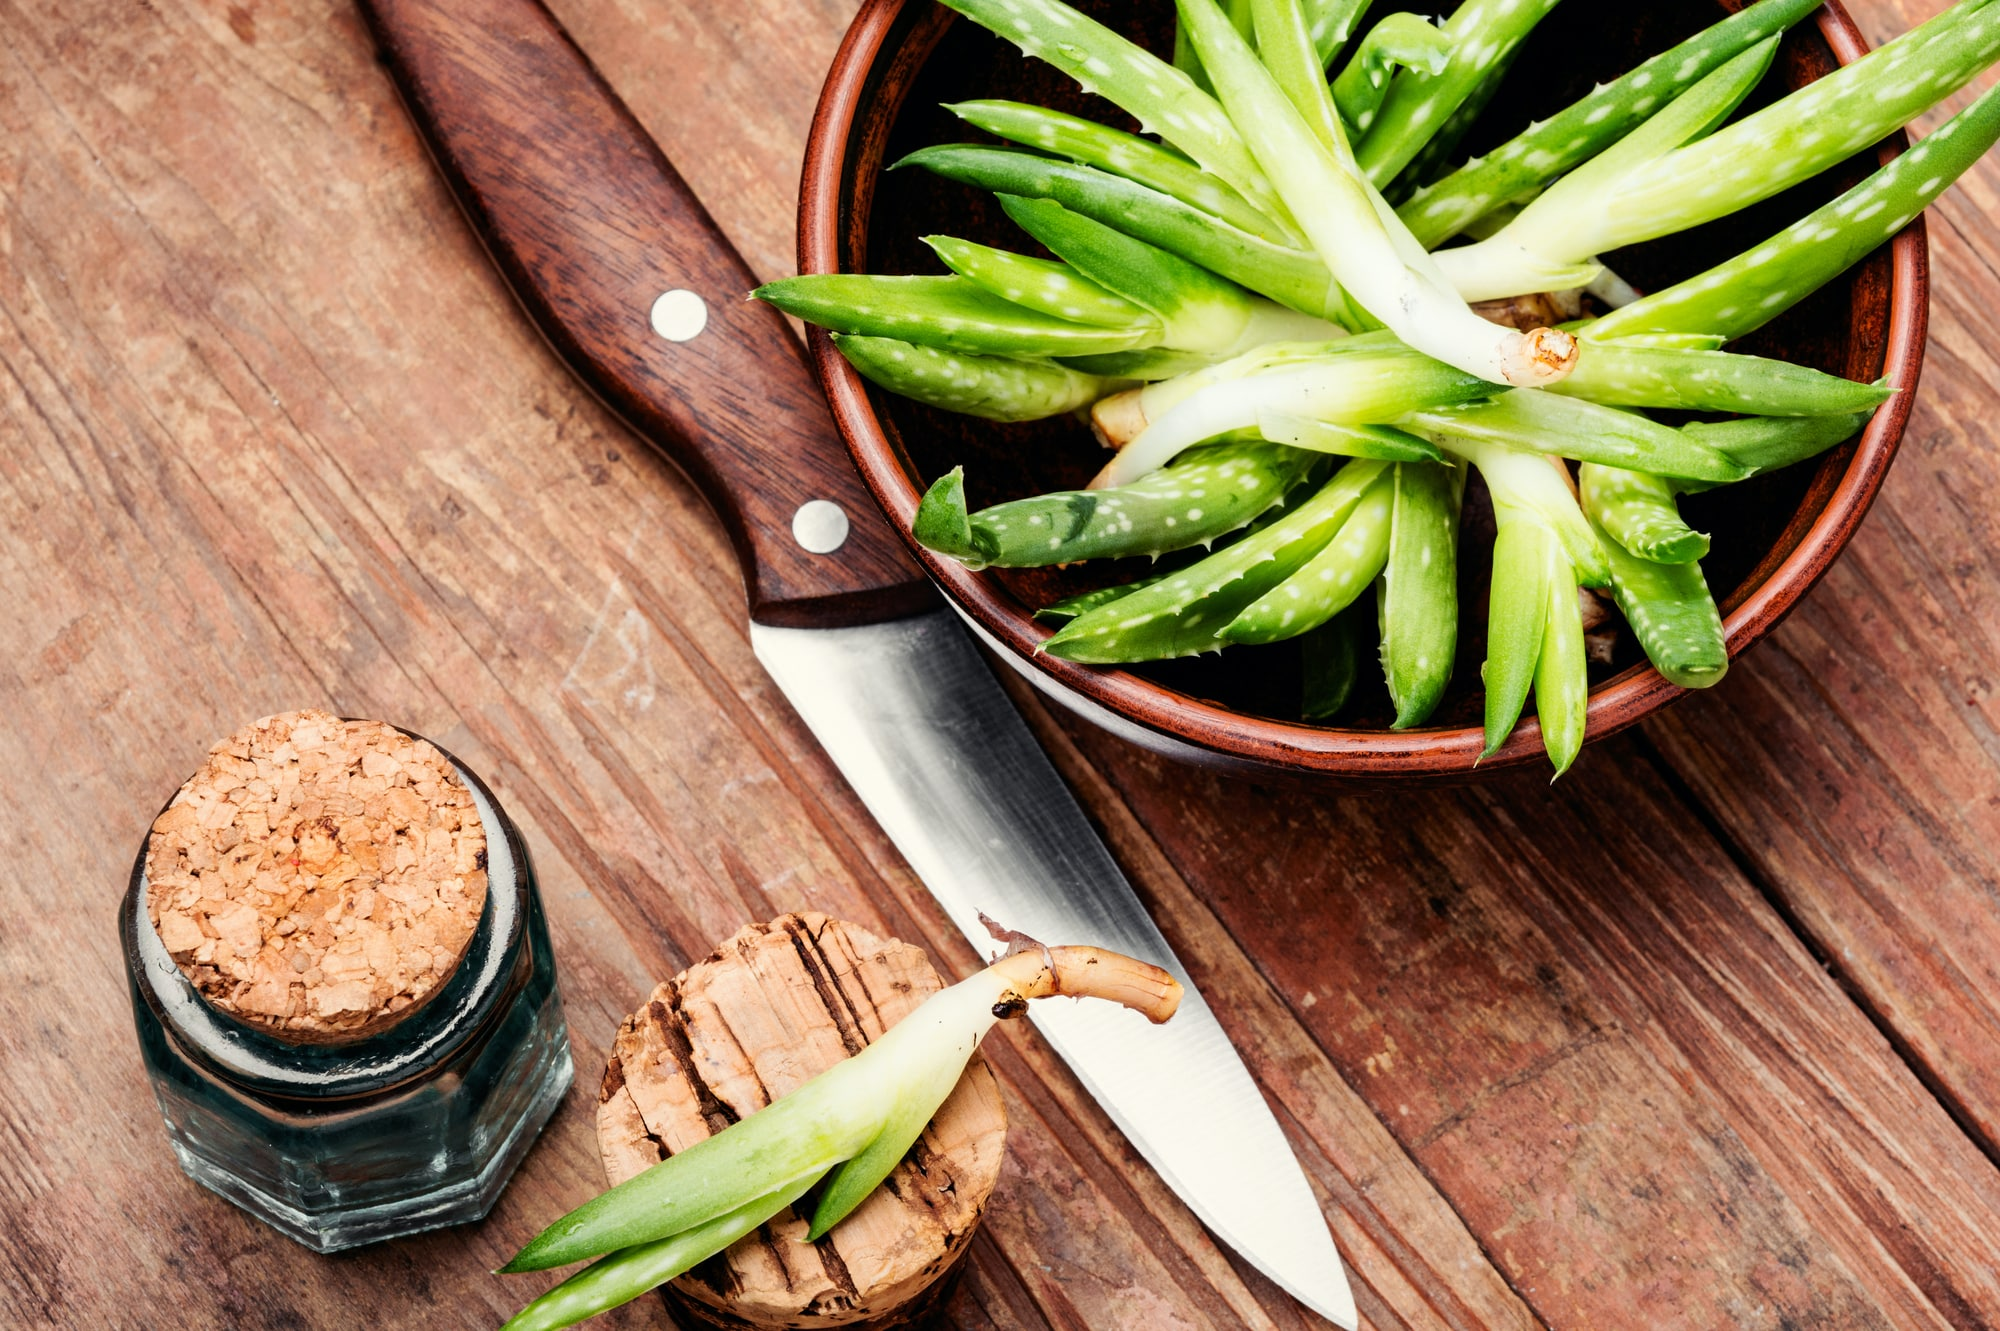 Cooking with Aloe Vera